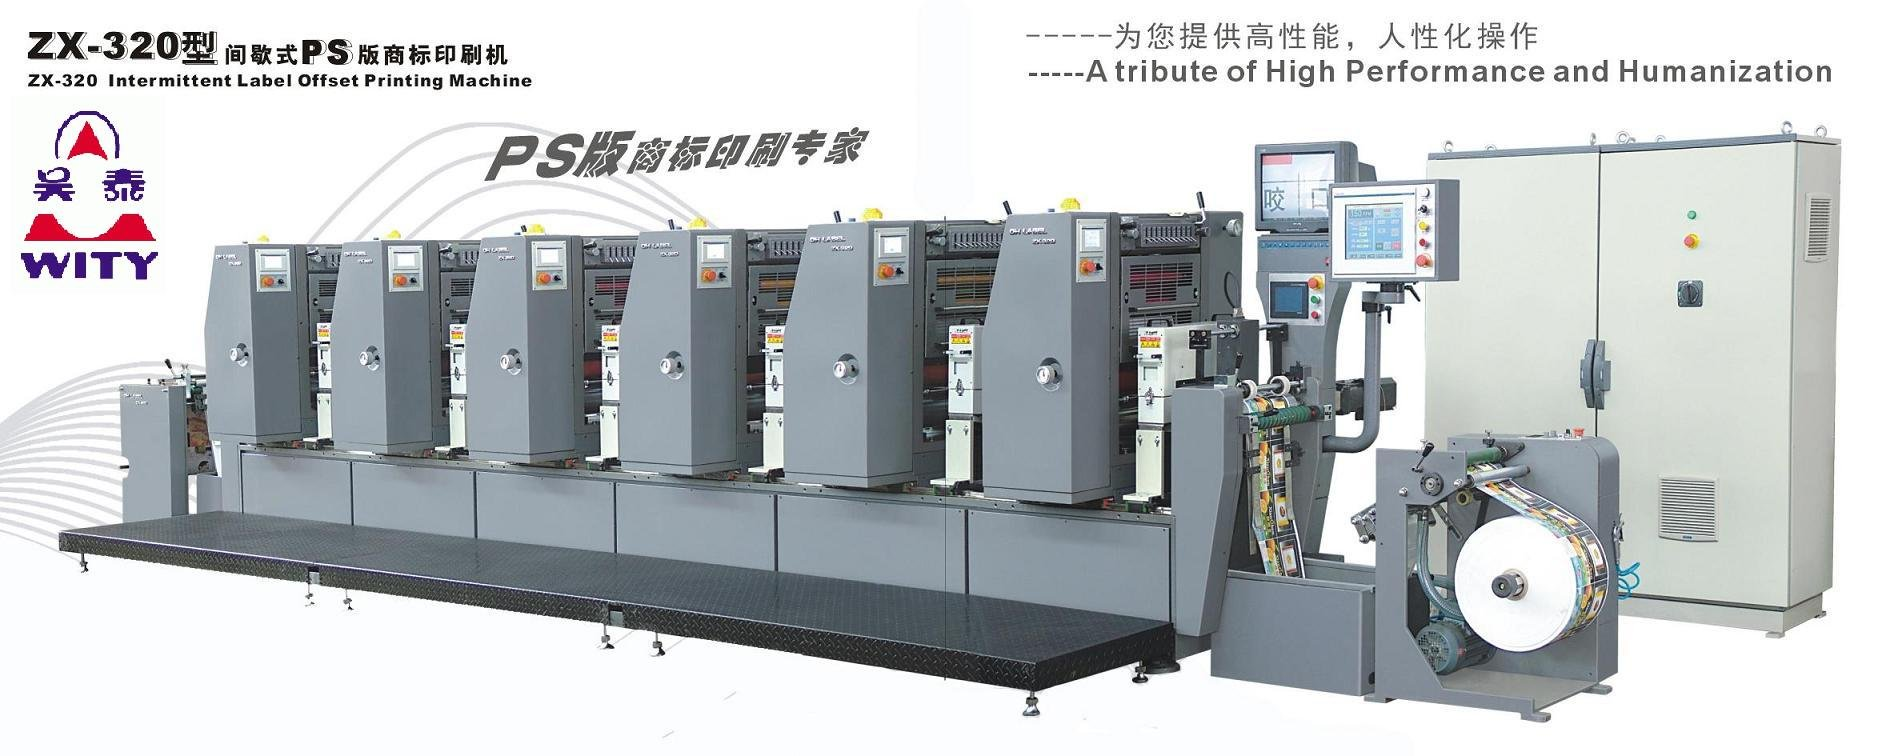 ZX-320 Roll Offset Printing Machine(amazing speed and accuracy)